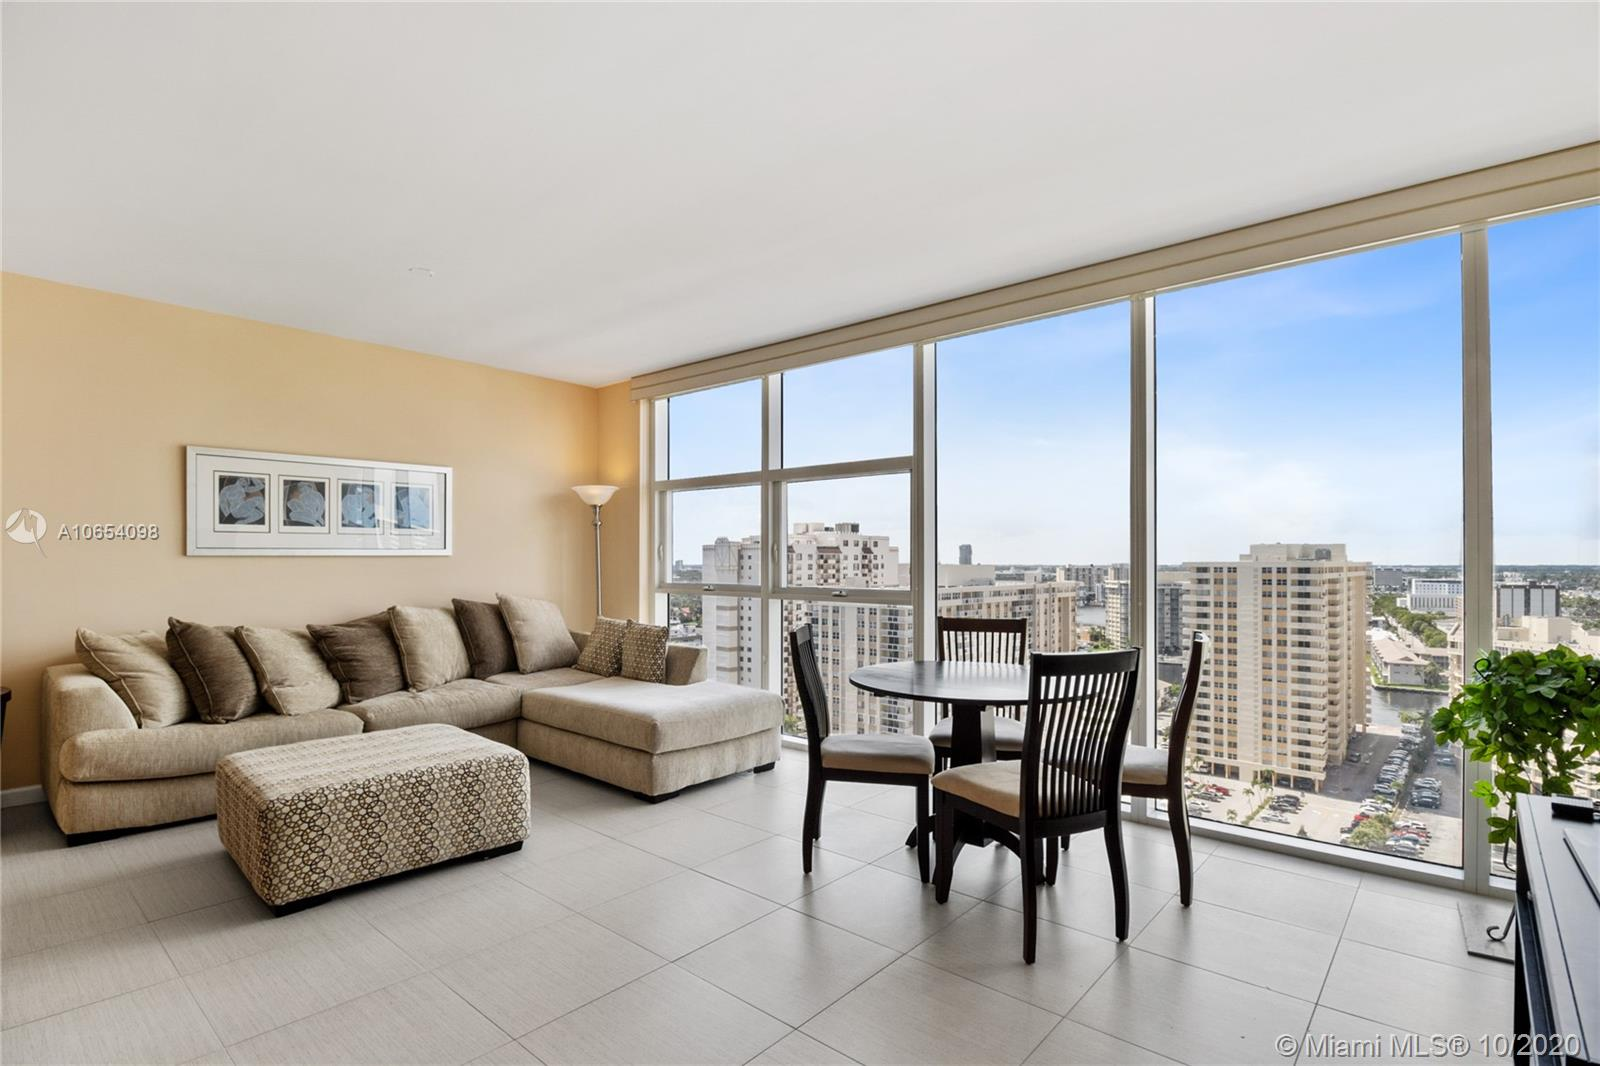 Beach Club II #1807 - 1830 S Ocean Dr #1807, Hallandale Beach, FL 33009